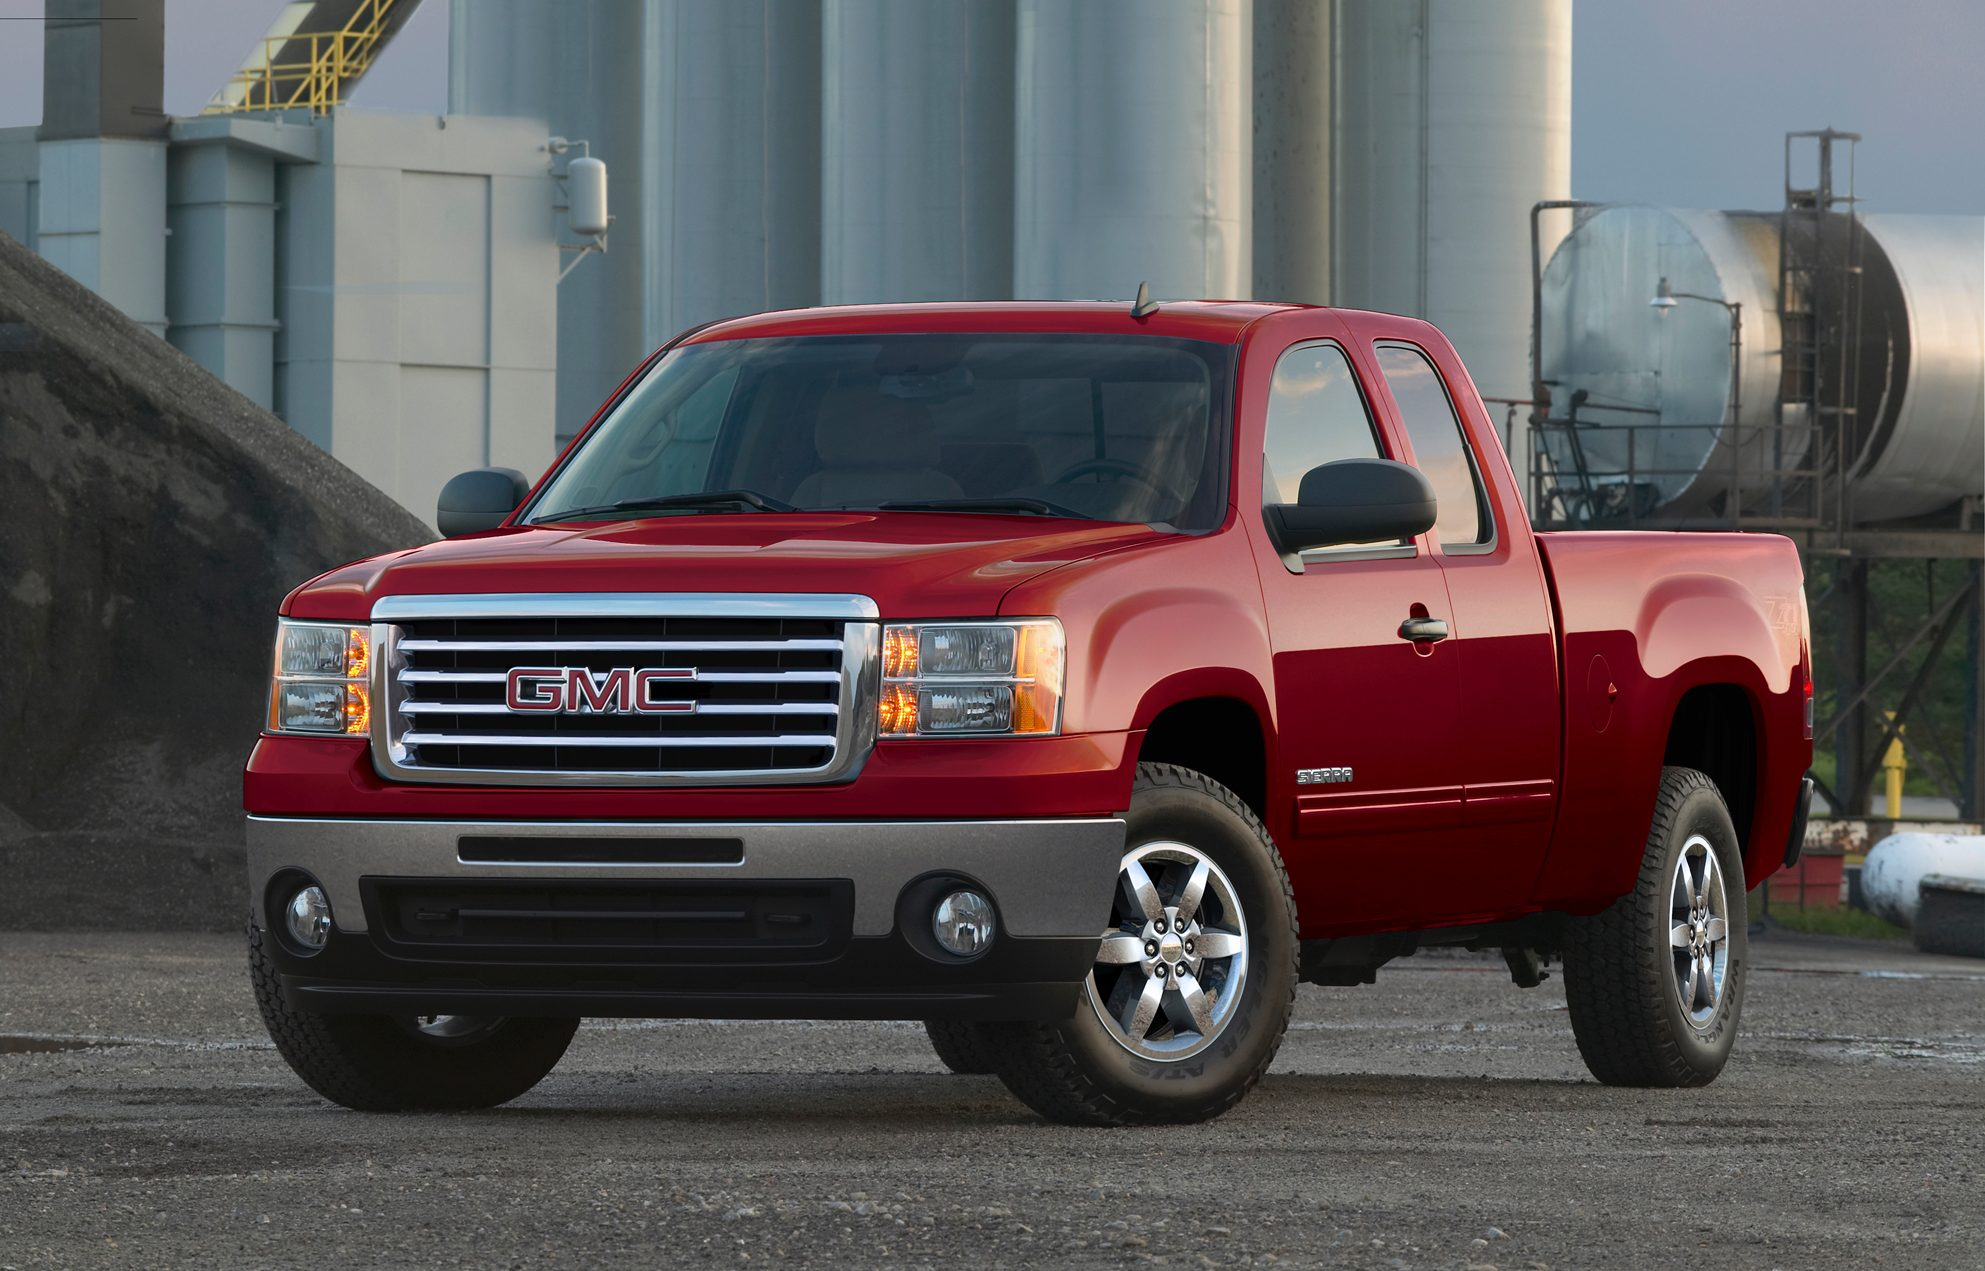 Colorado Springs Dodge >> 2013 GMC Sierra 1500 Review, Ratings, Specs, Prices, and Photos - The Car Connection